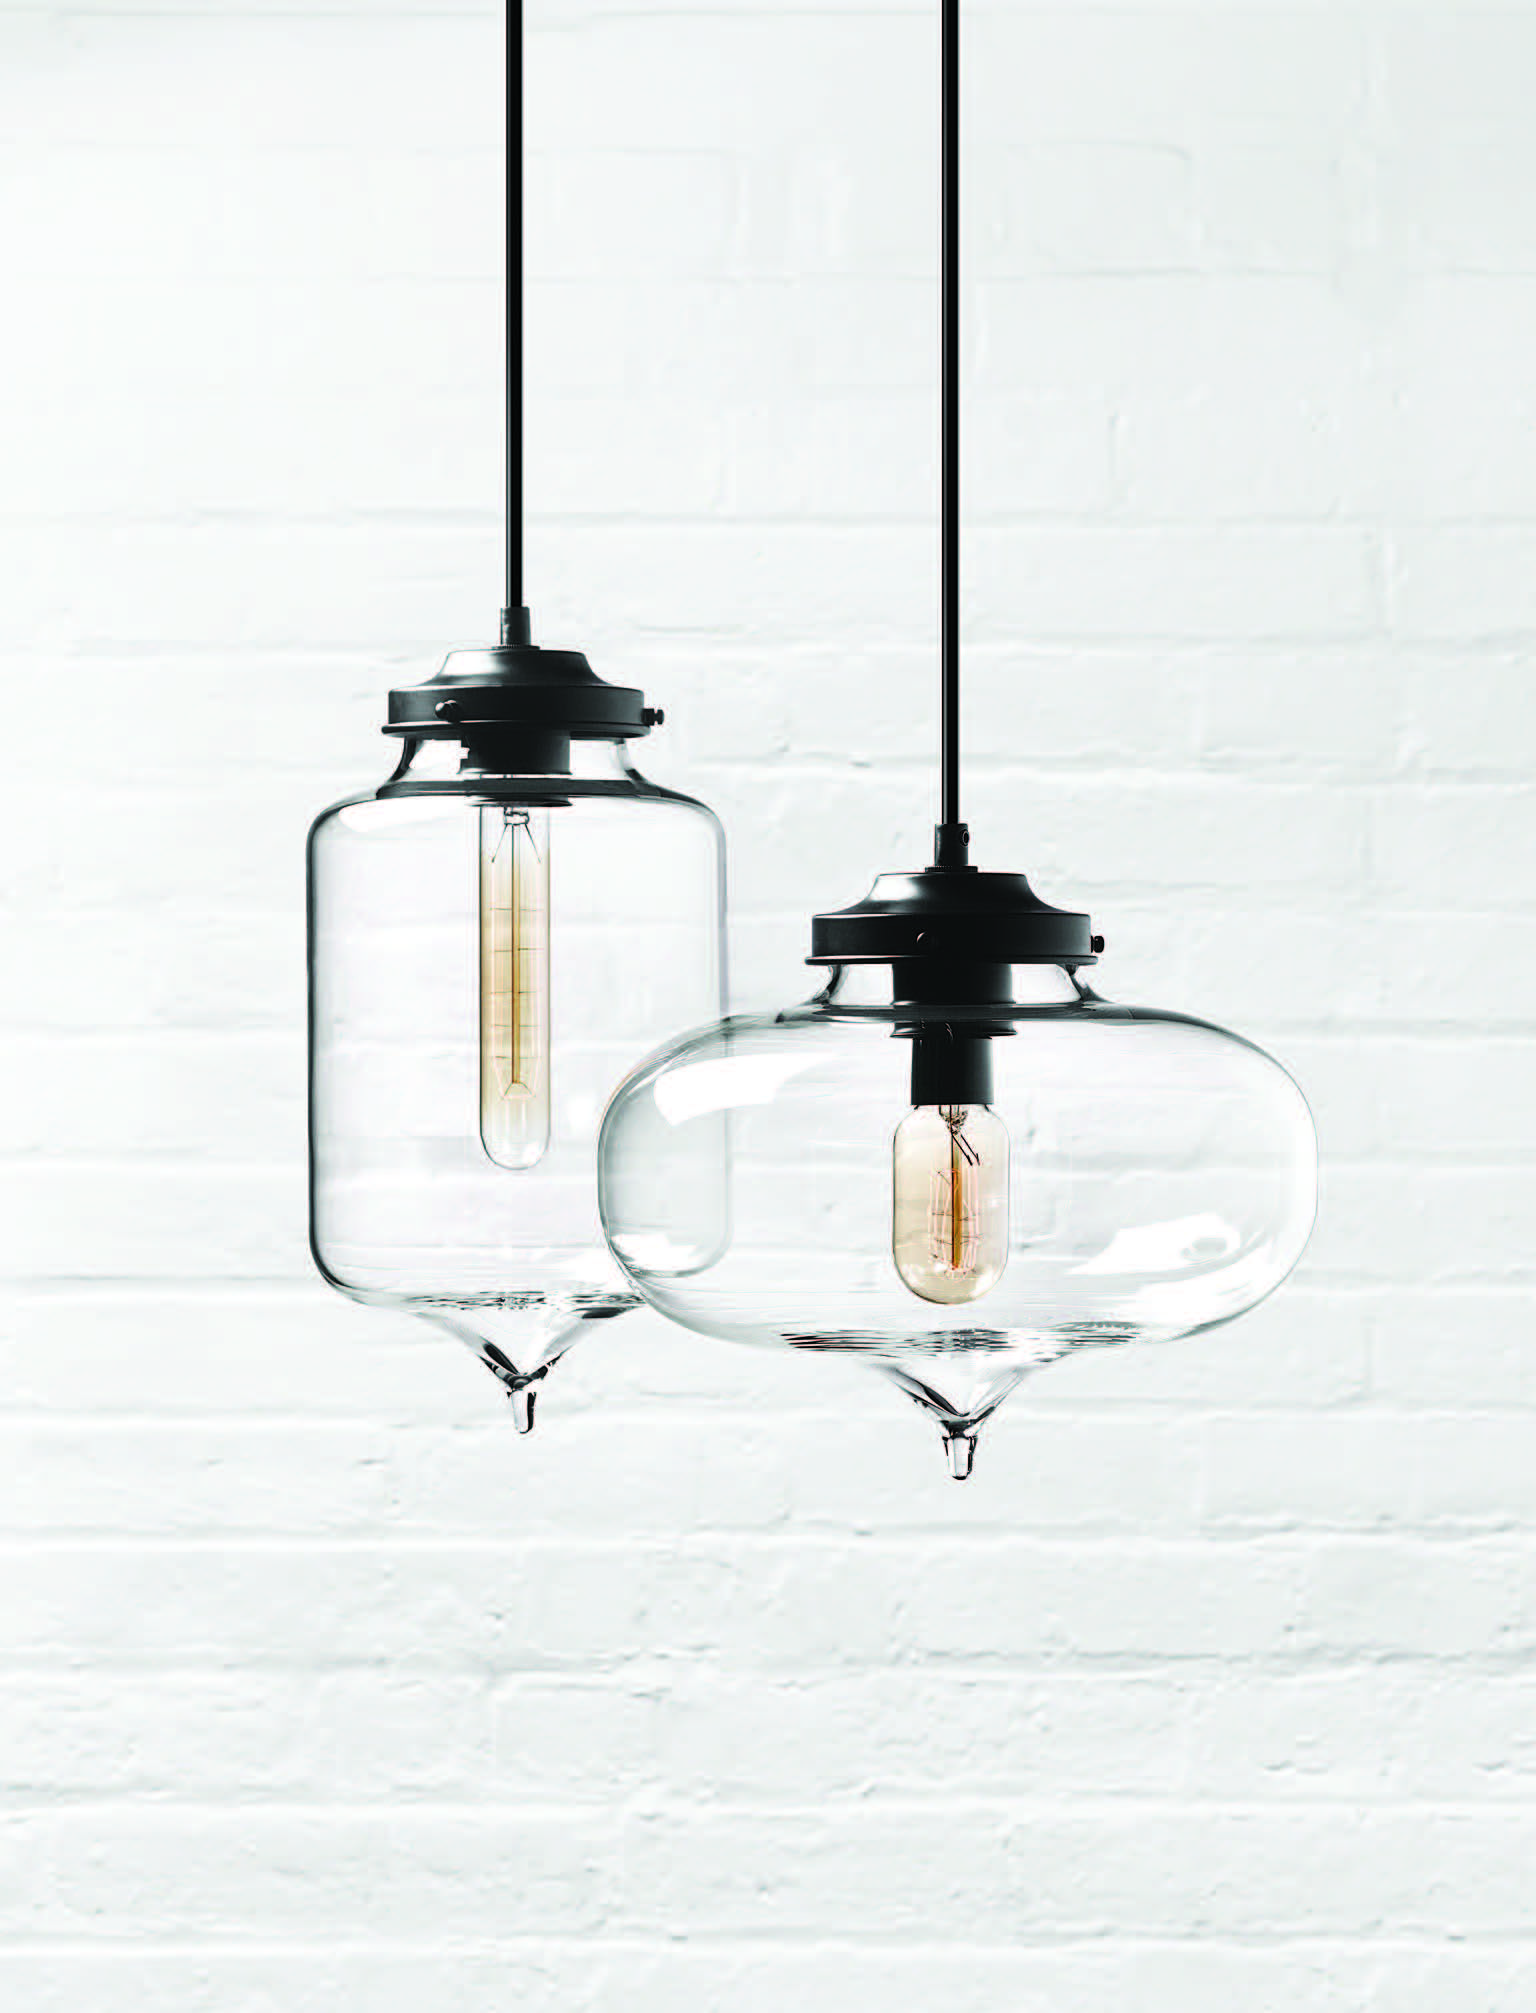 Handblown Glass Pendants By Niche Modern All Made With Love In Beacon New York Shop The Collection On Niche Modern Handblown Glass Pendant Hand Blown Glass